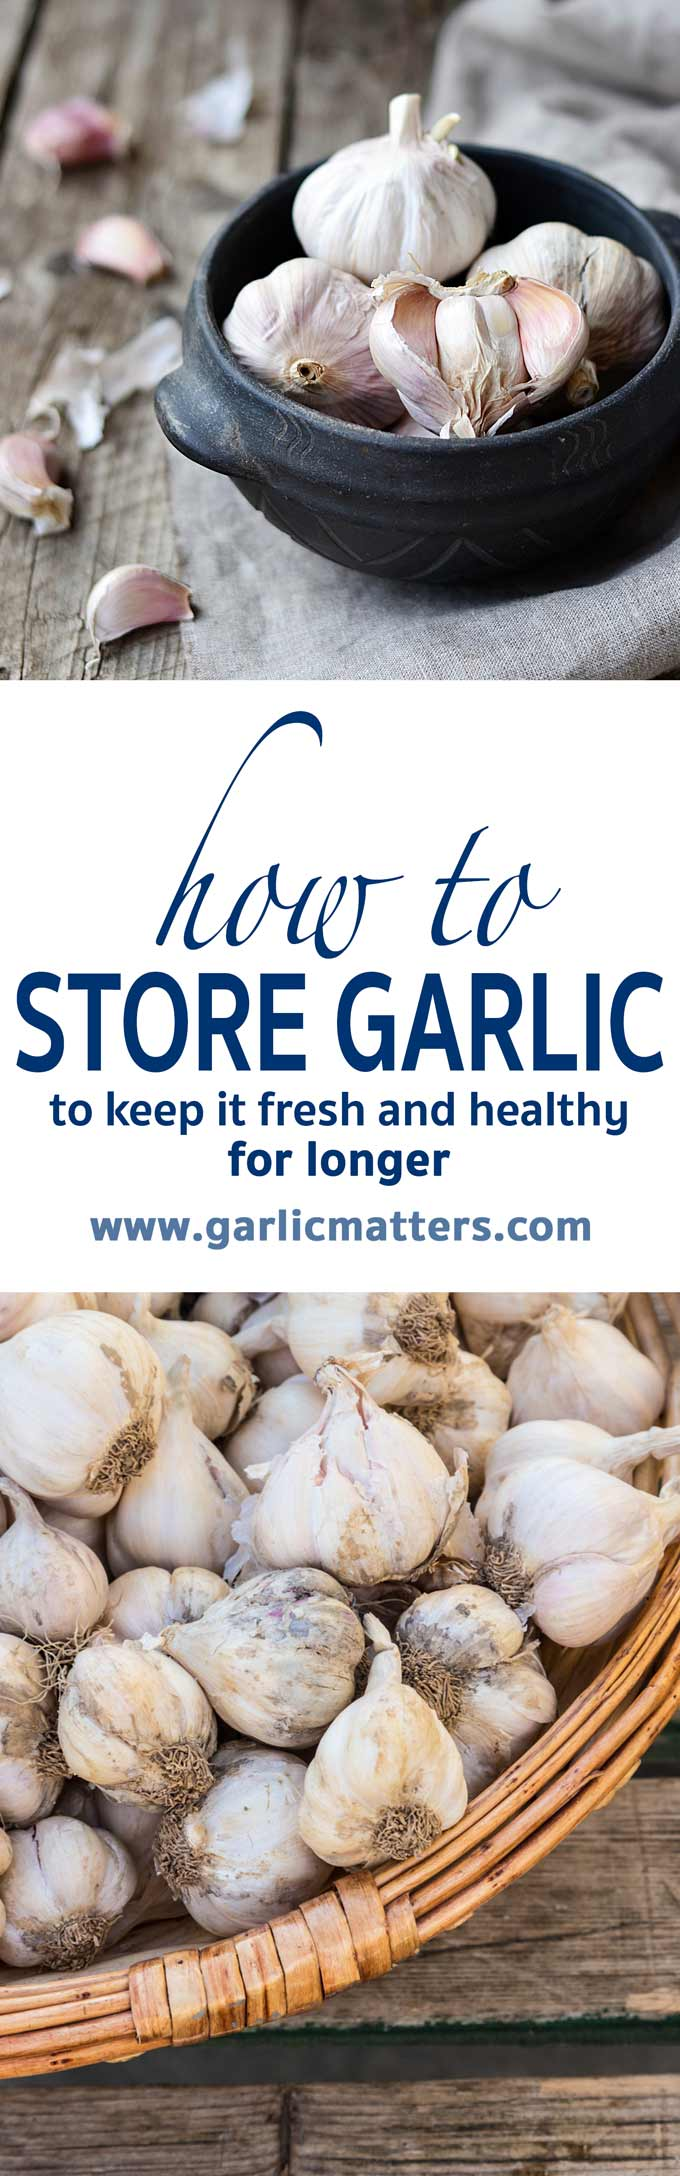 Storing Garlic - how to store garlic and keep it fresh for longer.